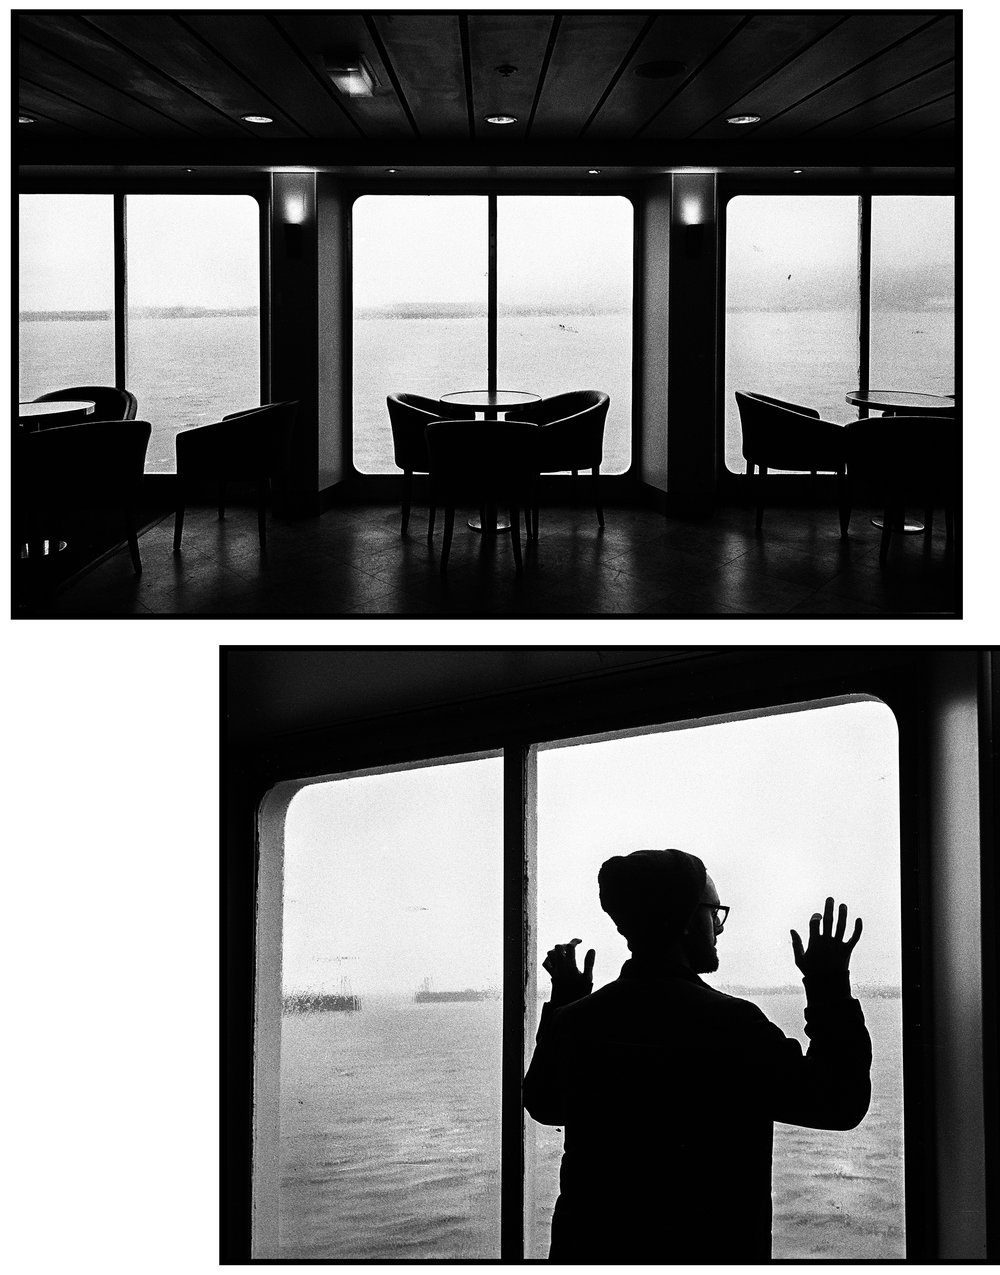 aviator europe photo per day_085_diptych.jpg